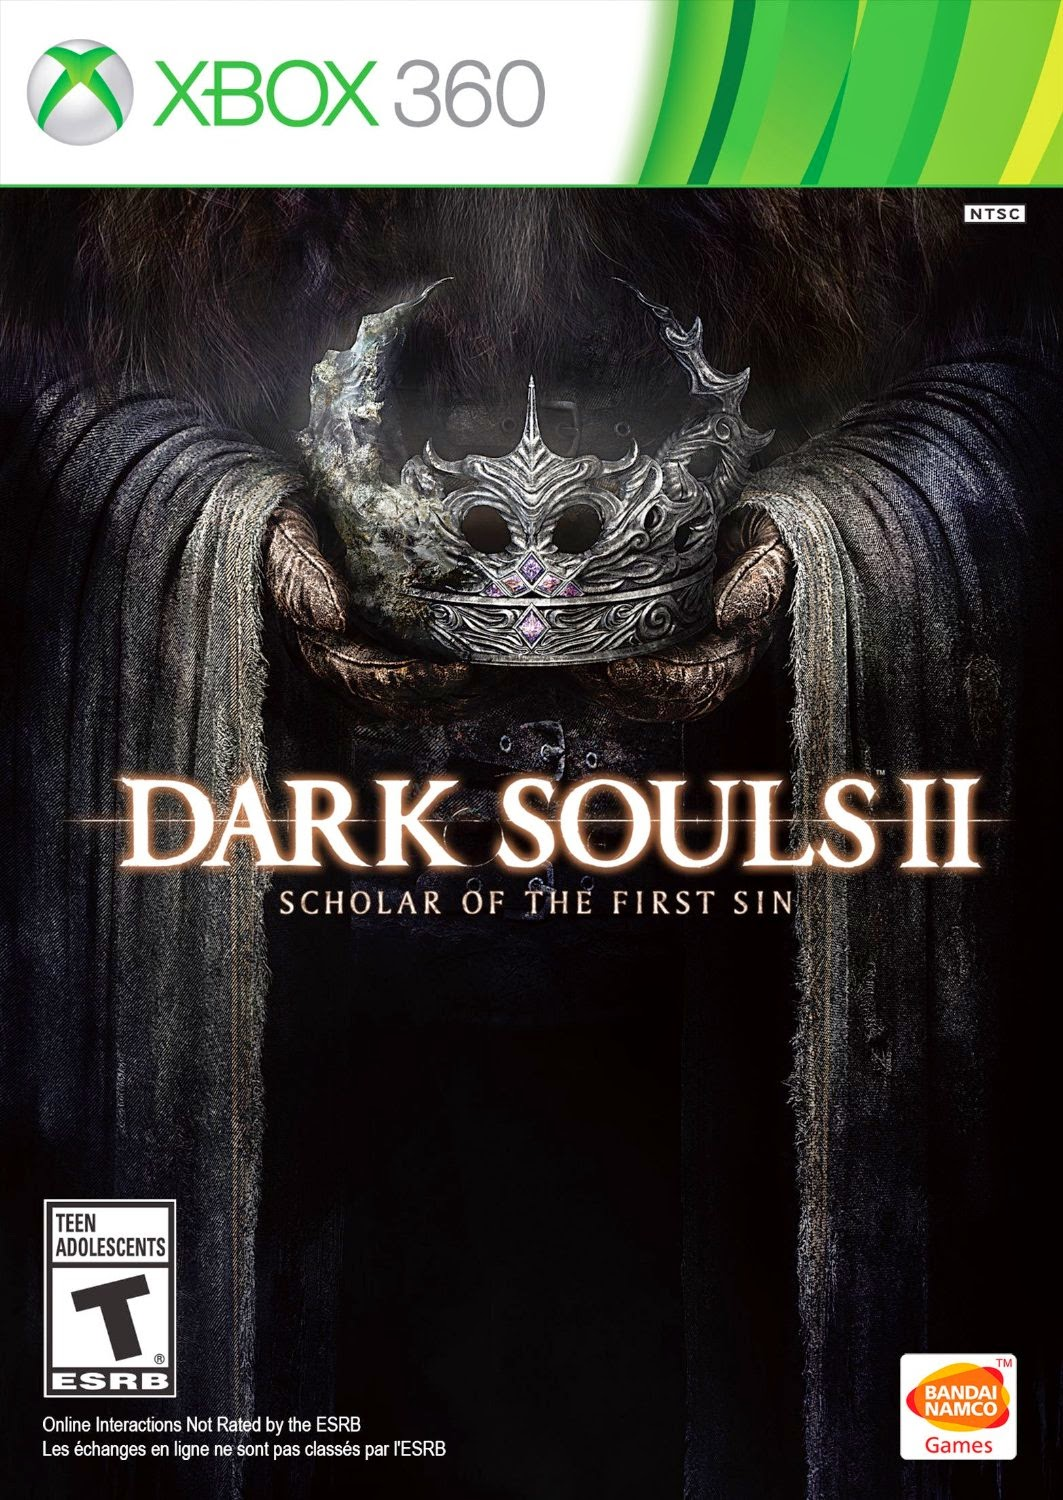 Dark Souls II Scholar of the First Sin Torrent XBOX 360 2015